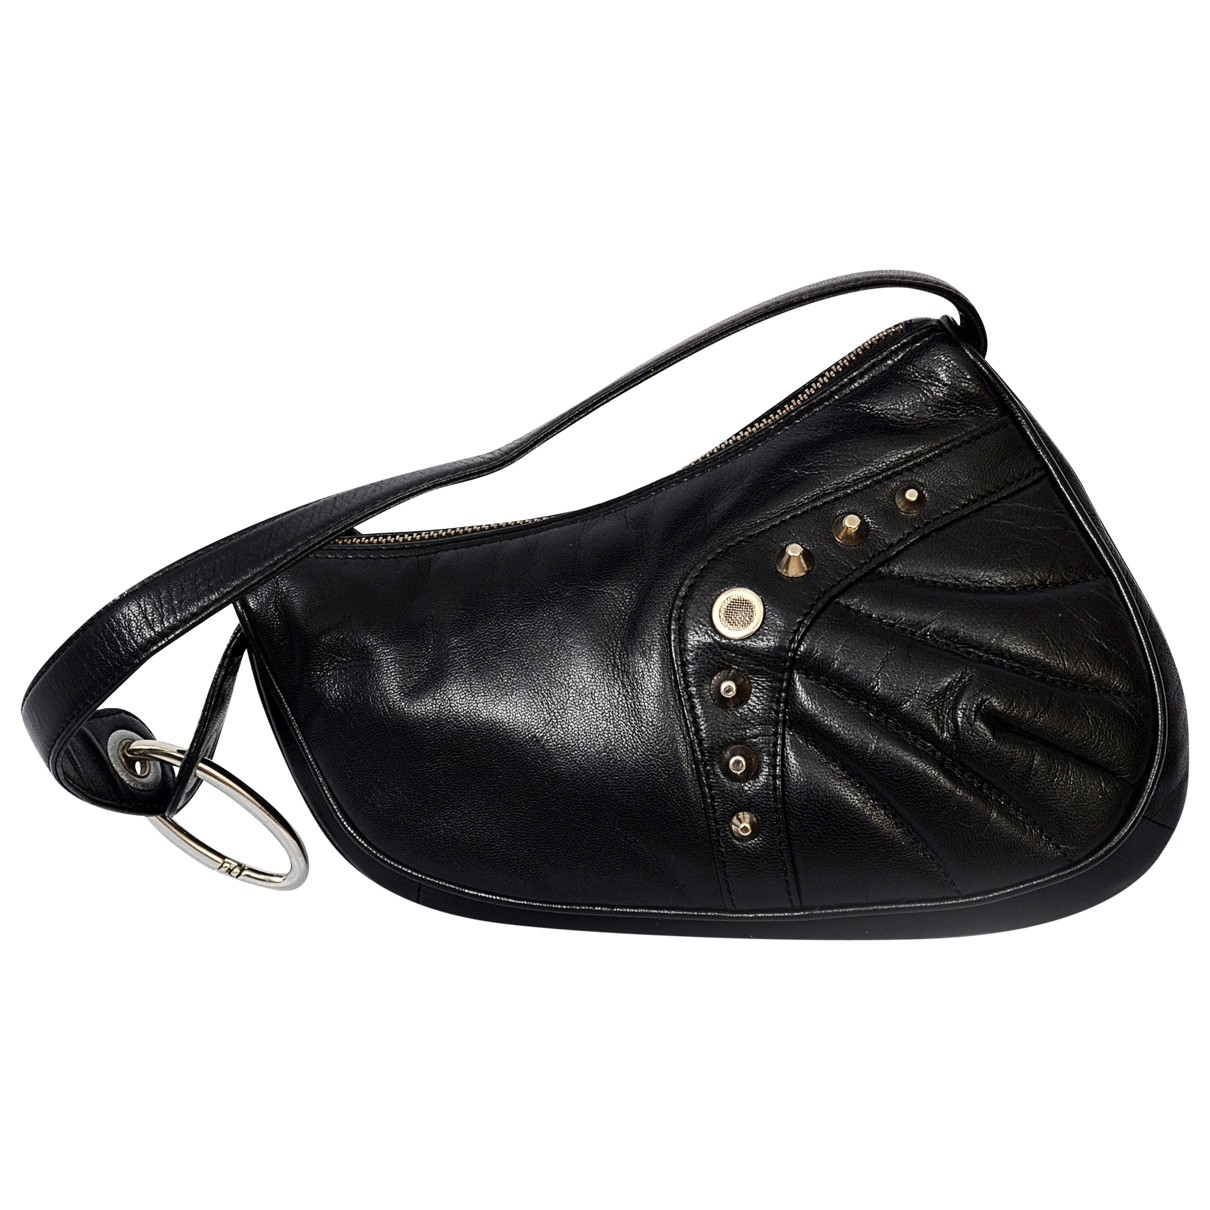 Roberto Cavalli \N Black Leather handbag for Women \N